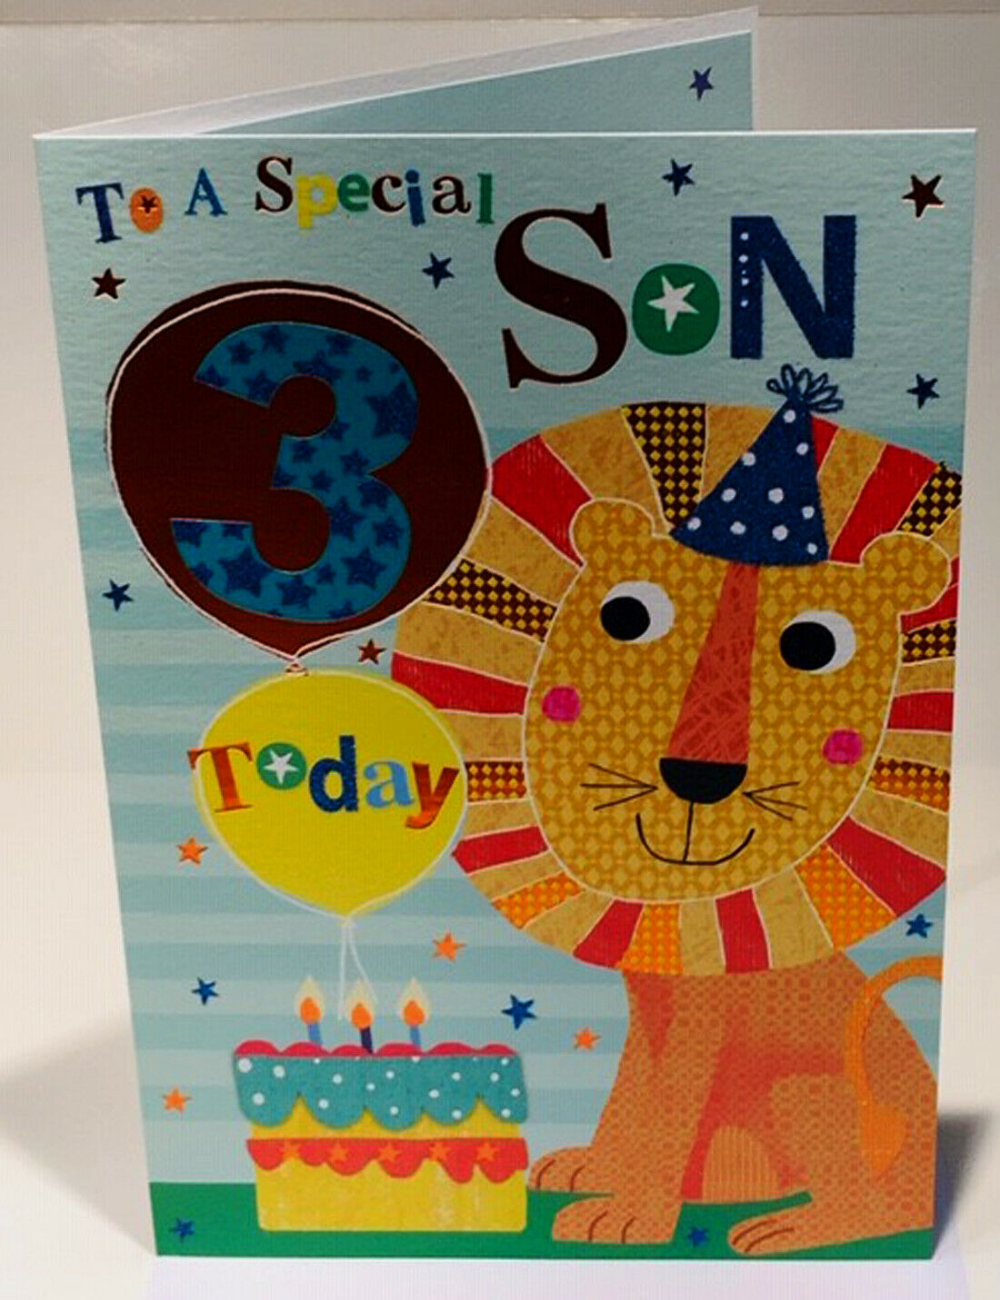 15 x 15 cms 5th Birthday Card For A Special Granddaughter 5 Today